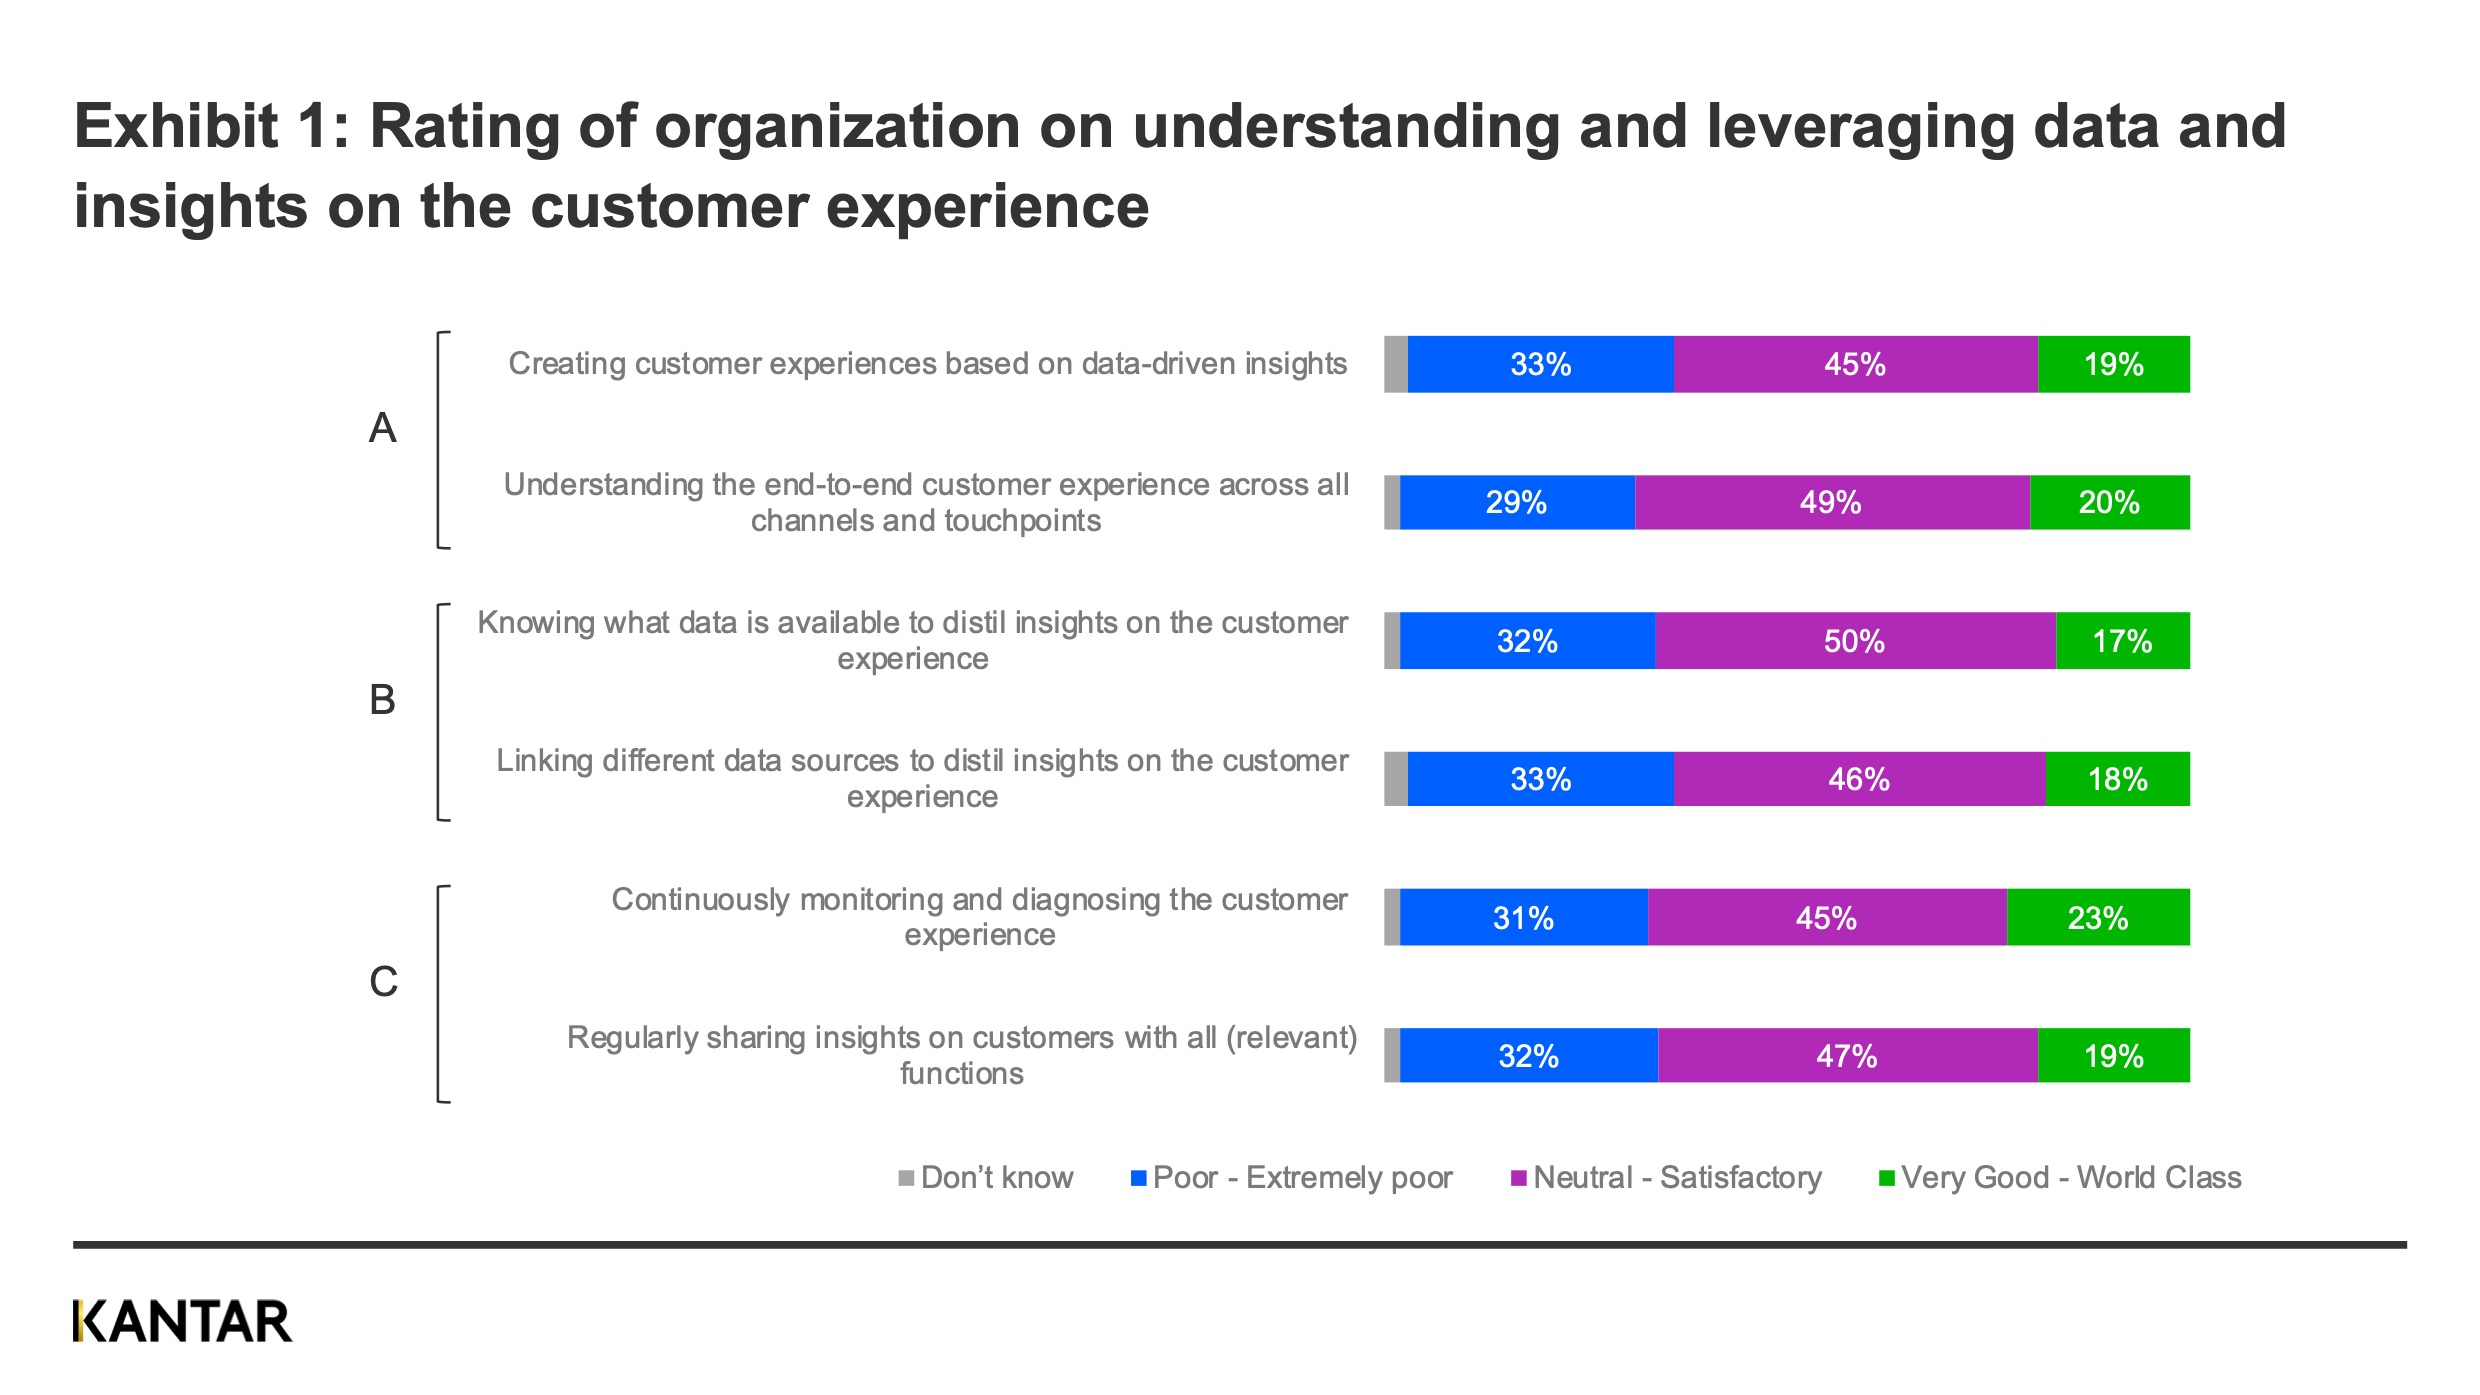 Rating understanding and leveraging data on cx